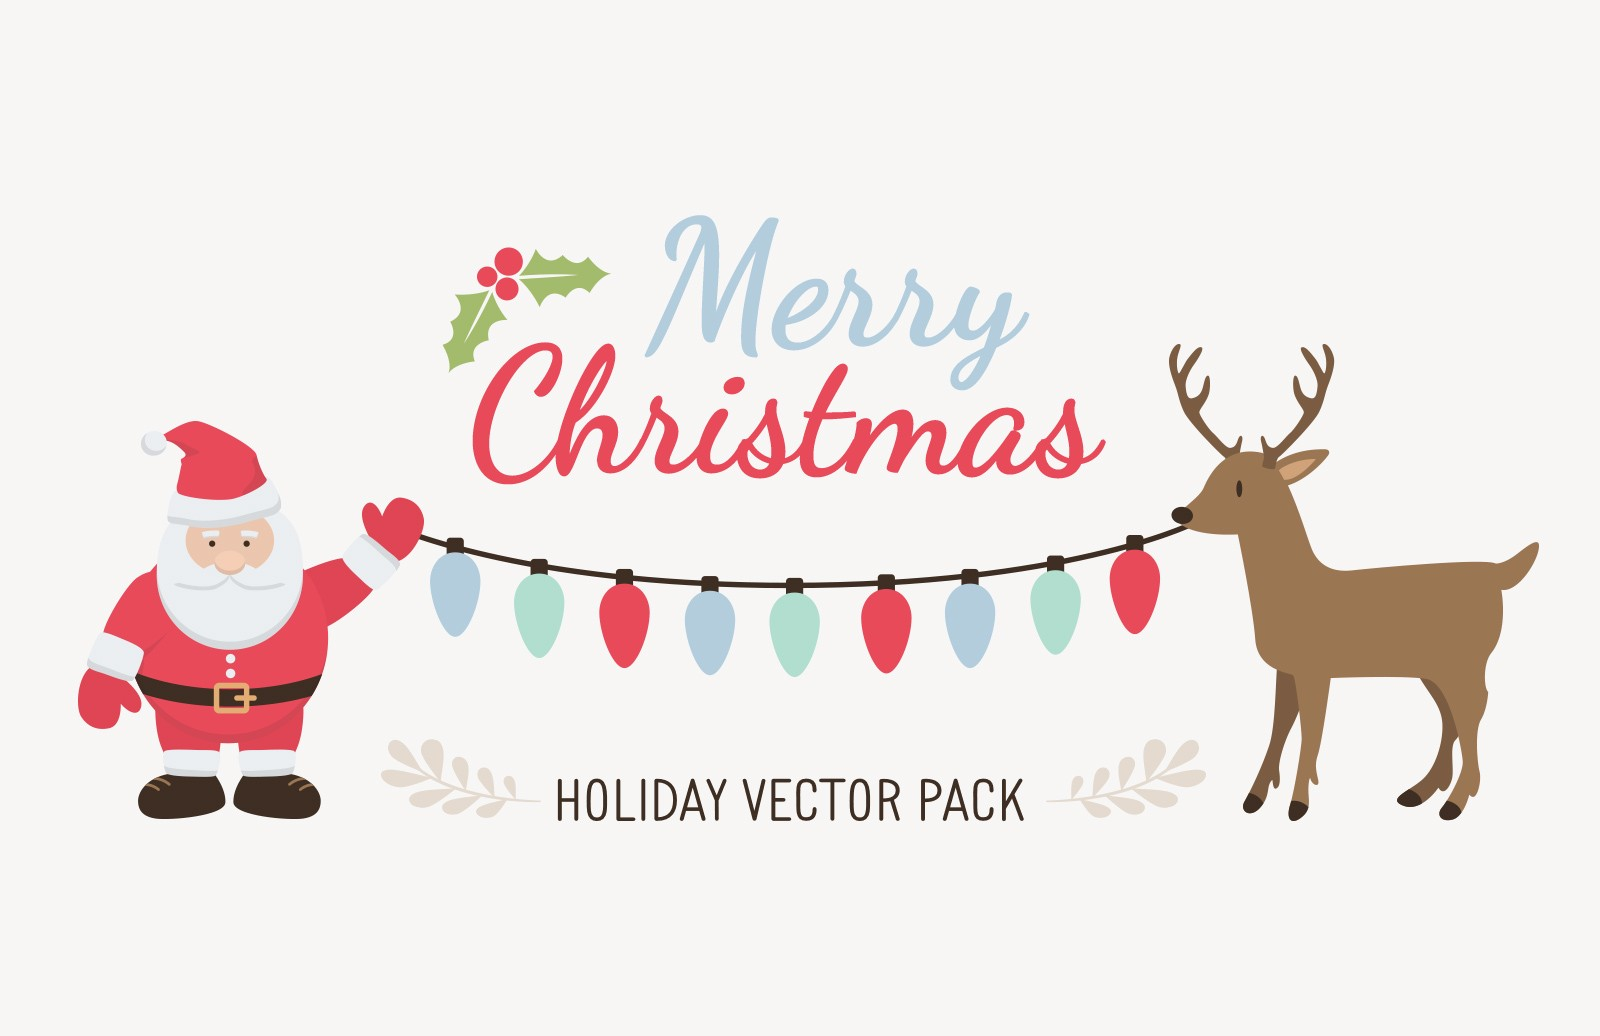 Holiday Vector Pack